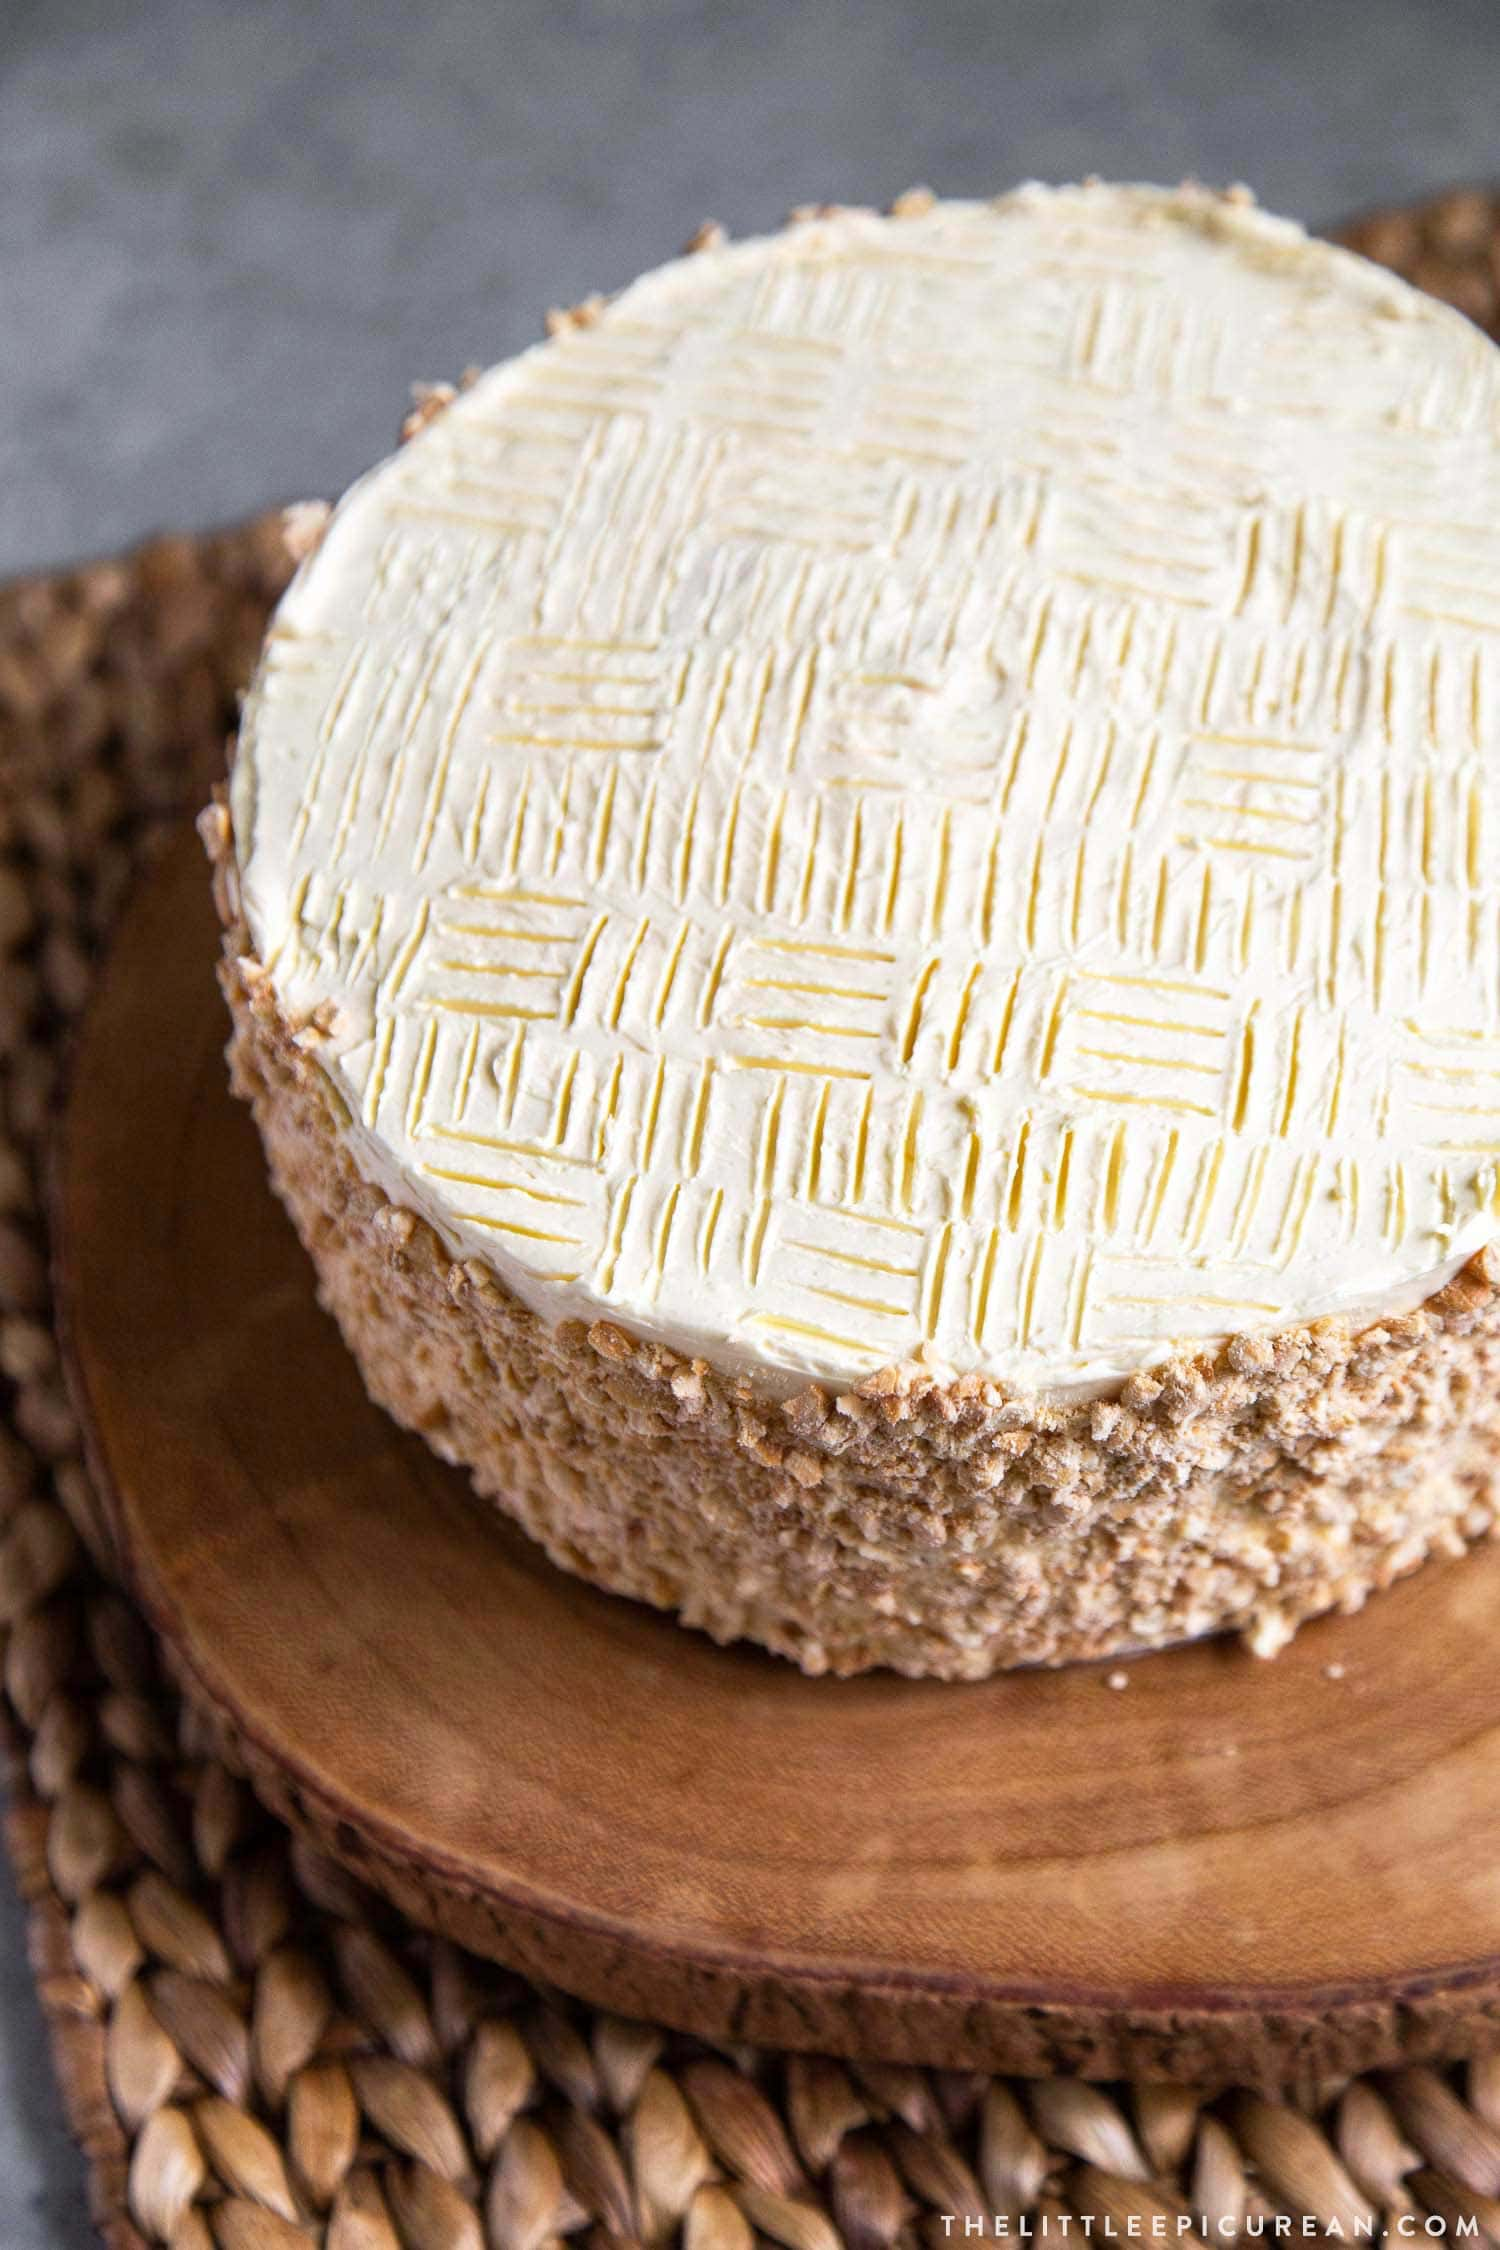 Decorate the top of Sans Rival Cake by making patterns with the tines of a fork. #sansrival #cake #filipinocake #easycakedecor #layercake #cashewcake